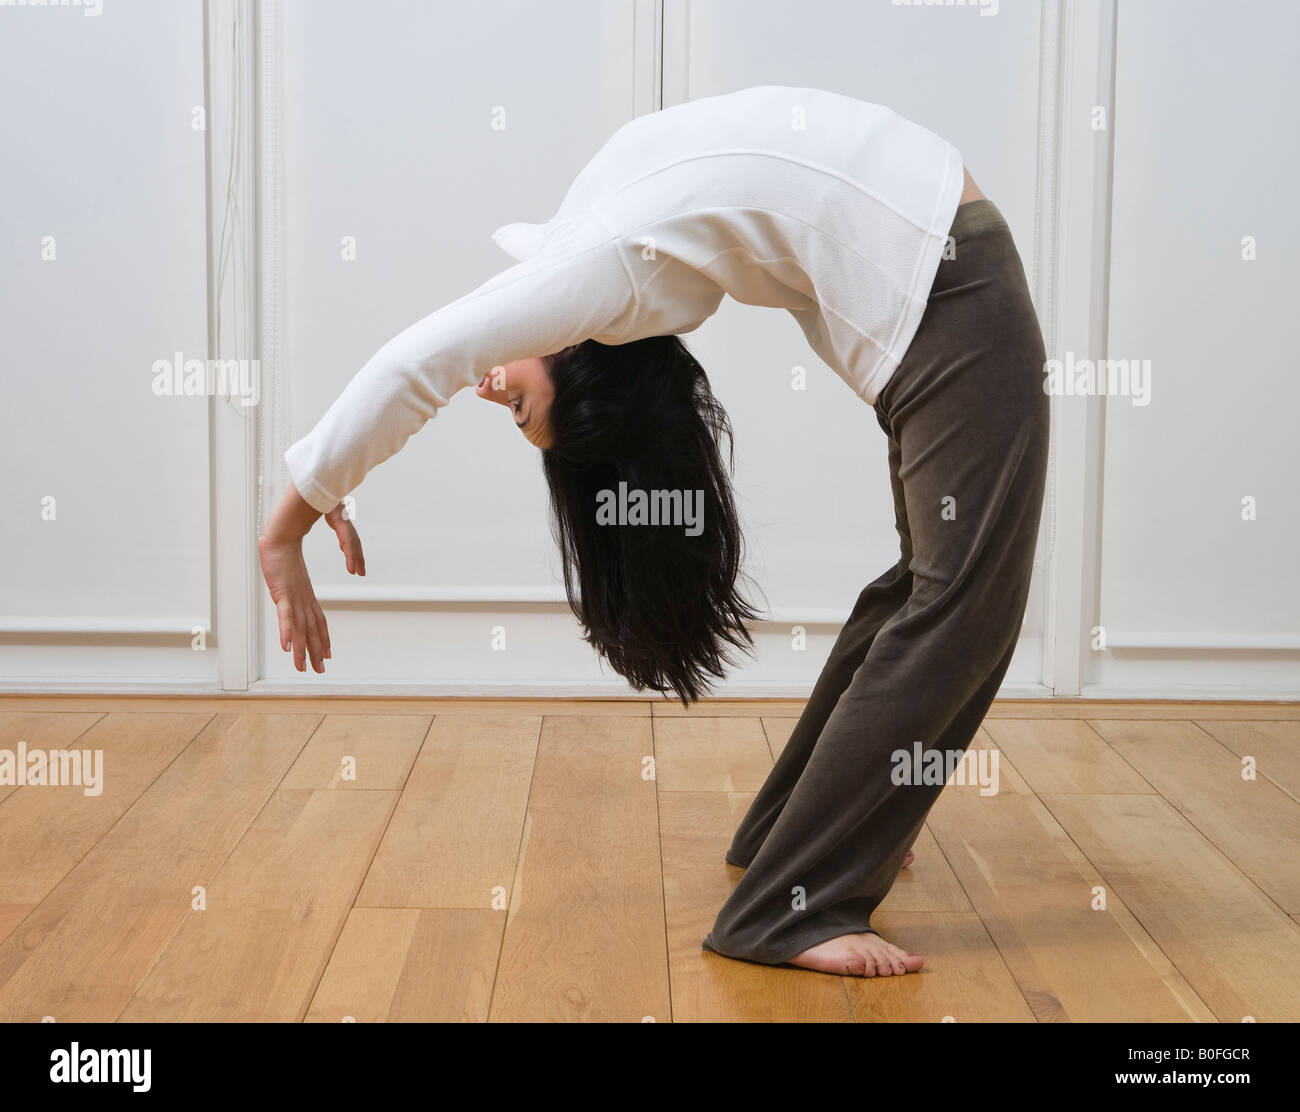 Woman doing back bend - Stock Image